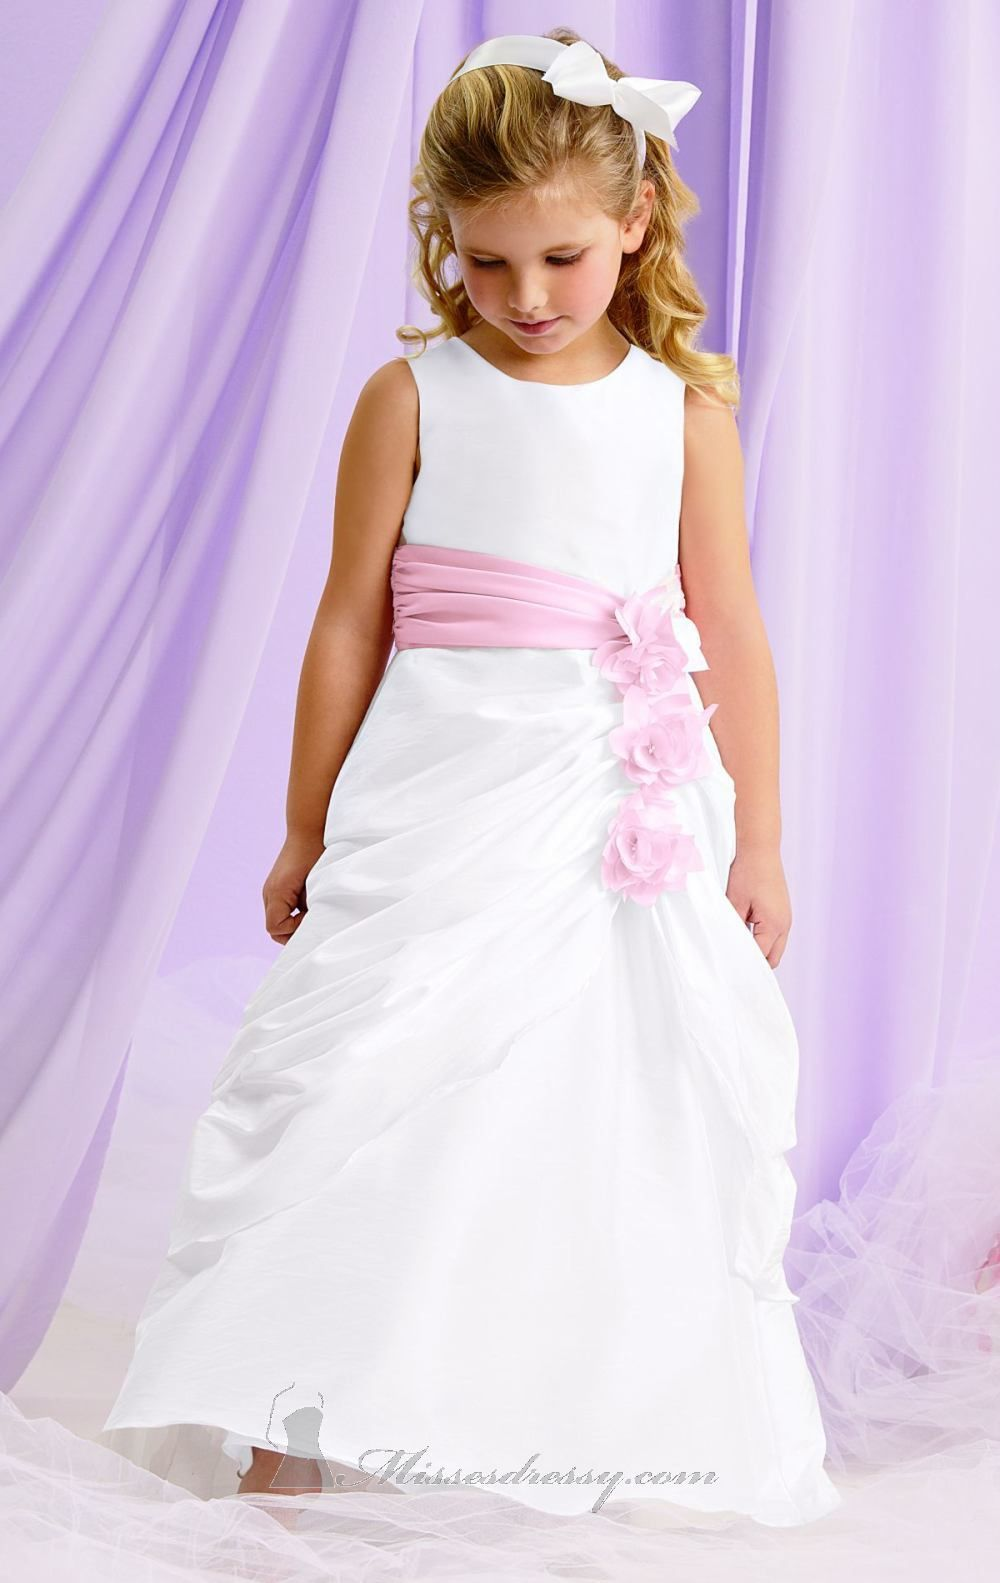 Bridal gowns with red accents  Jordan L Dress  MissesDressy  Kidsu Dresses  Pinterest